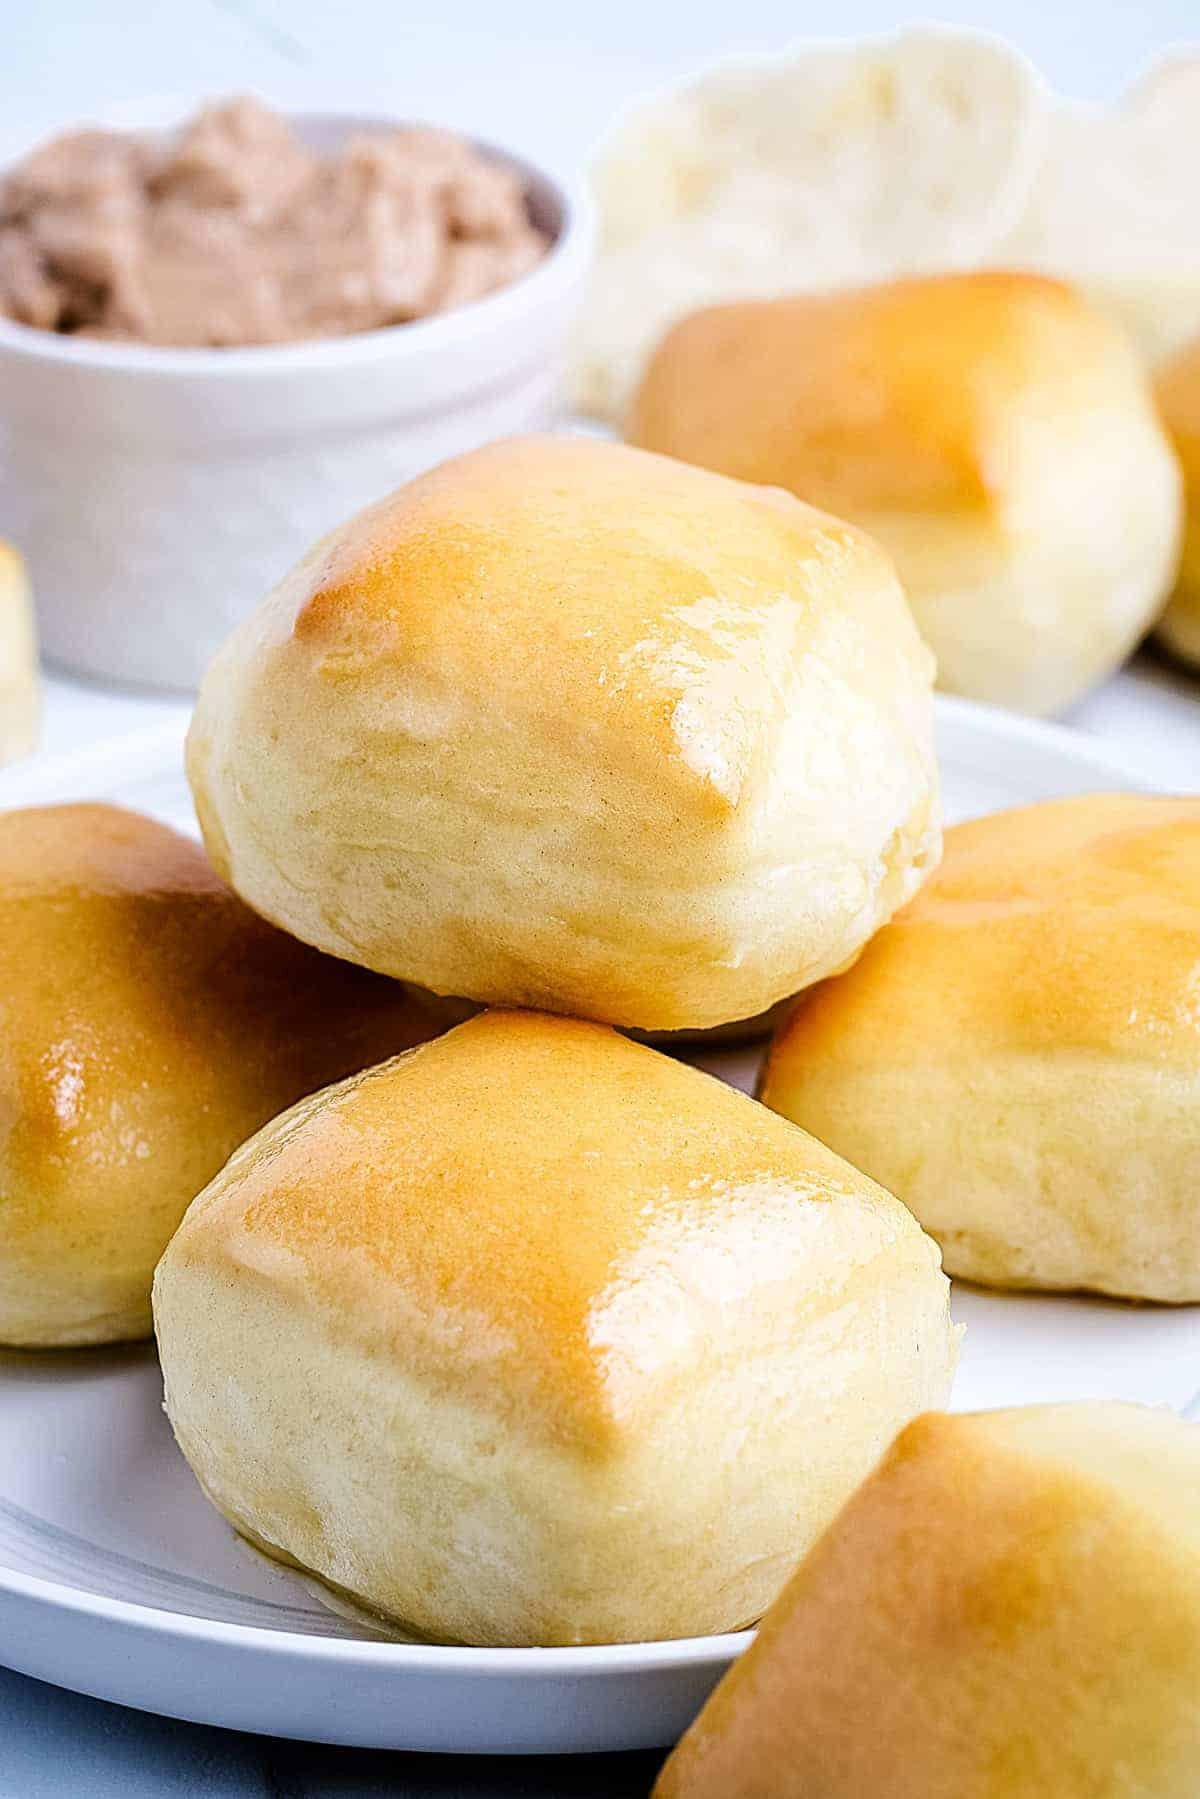 Texas Roadhouse Rolls on a white plate